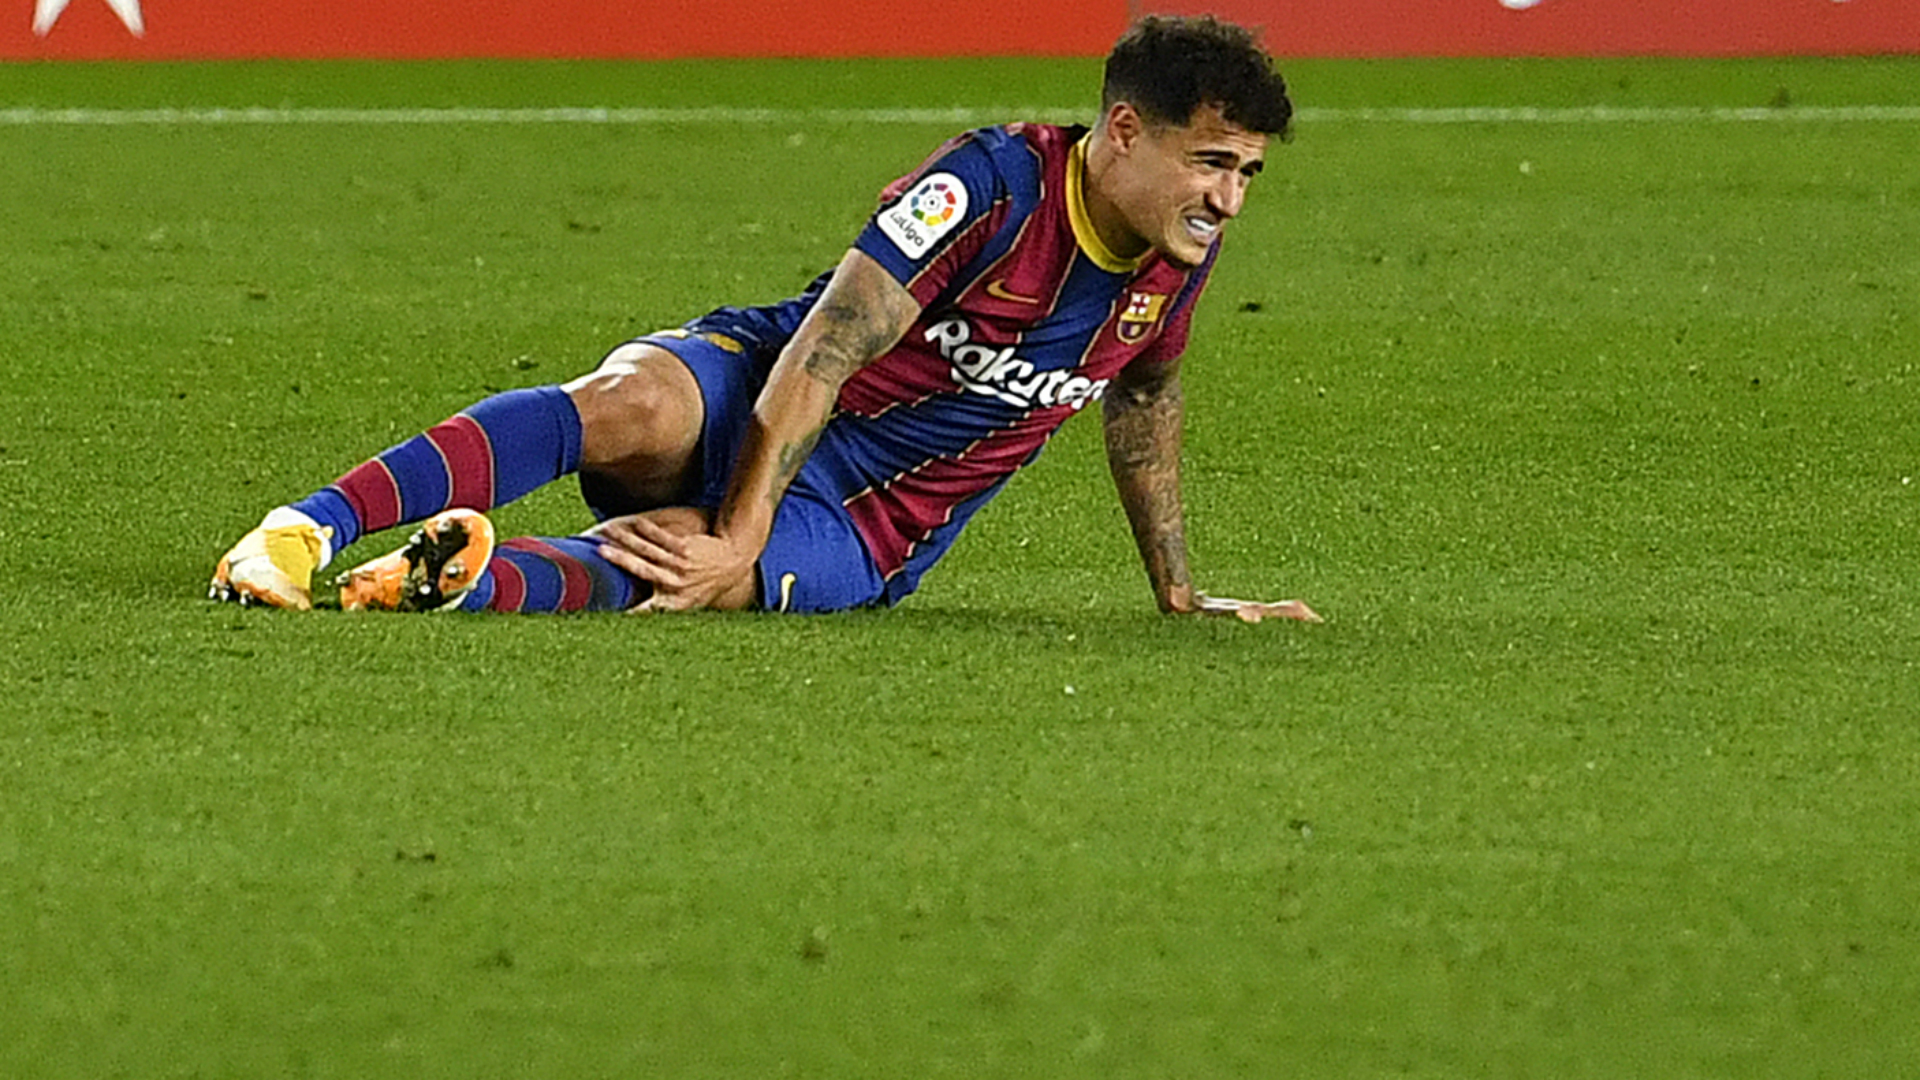 Coutinho could face several months out as Barcelona confirm meniscus surgery